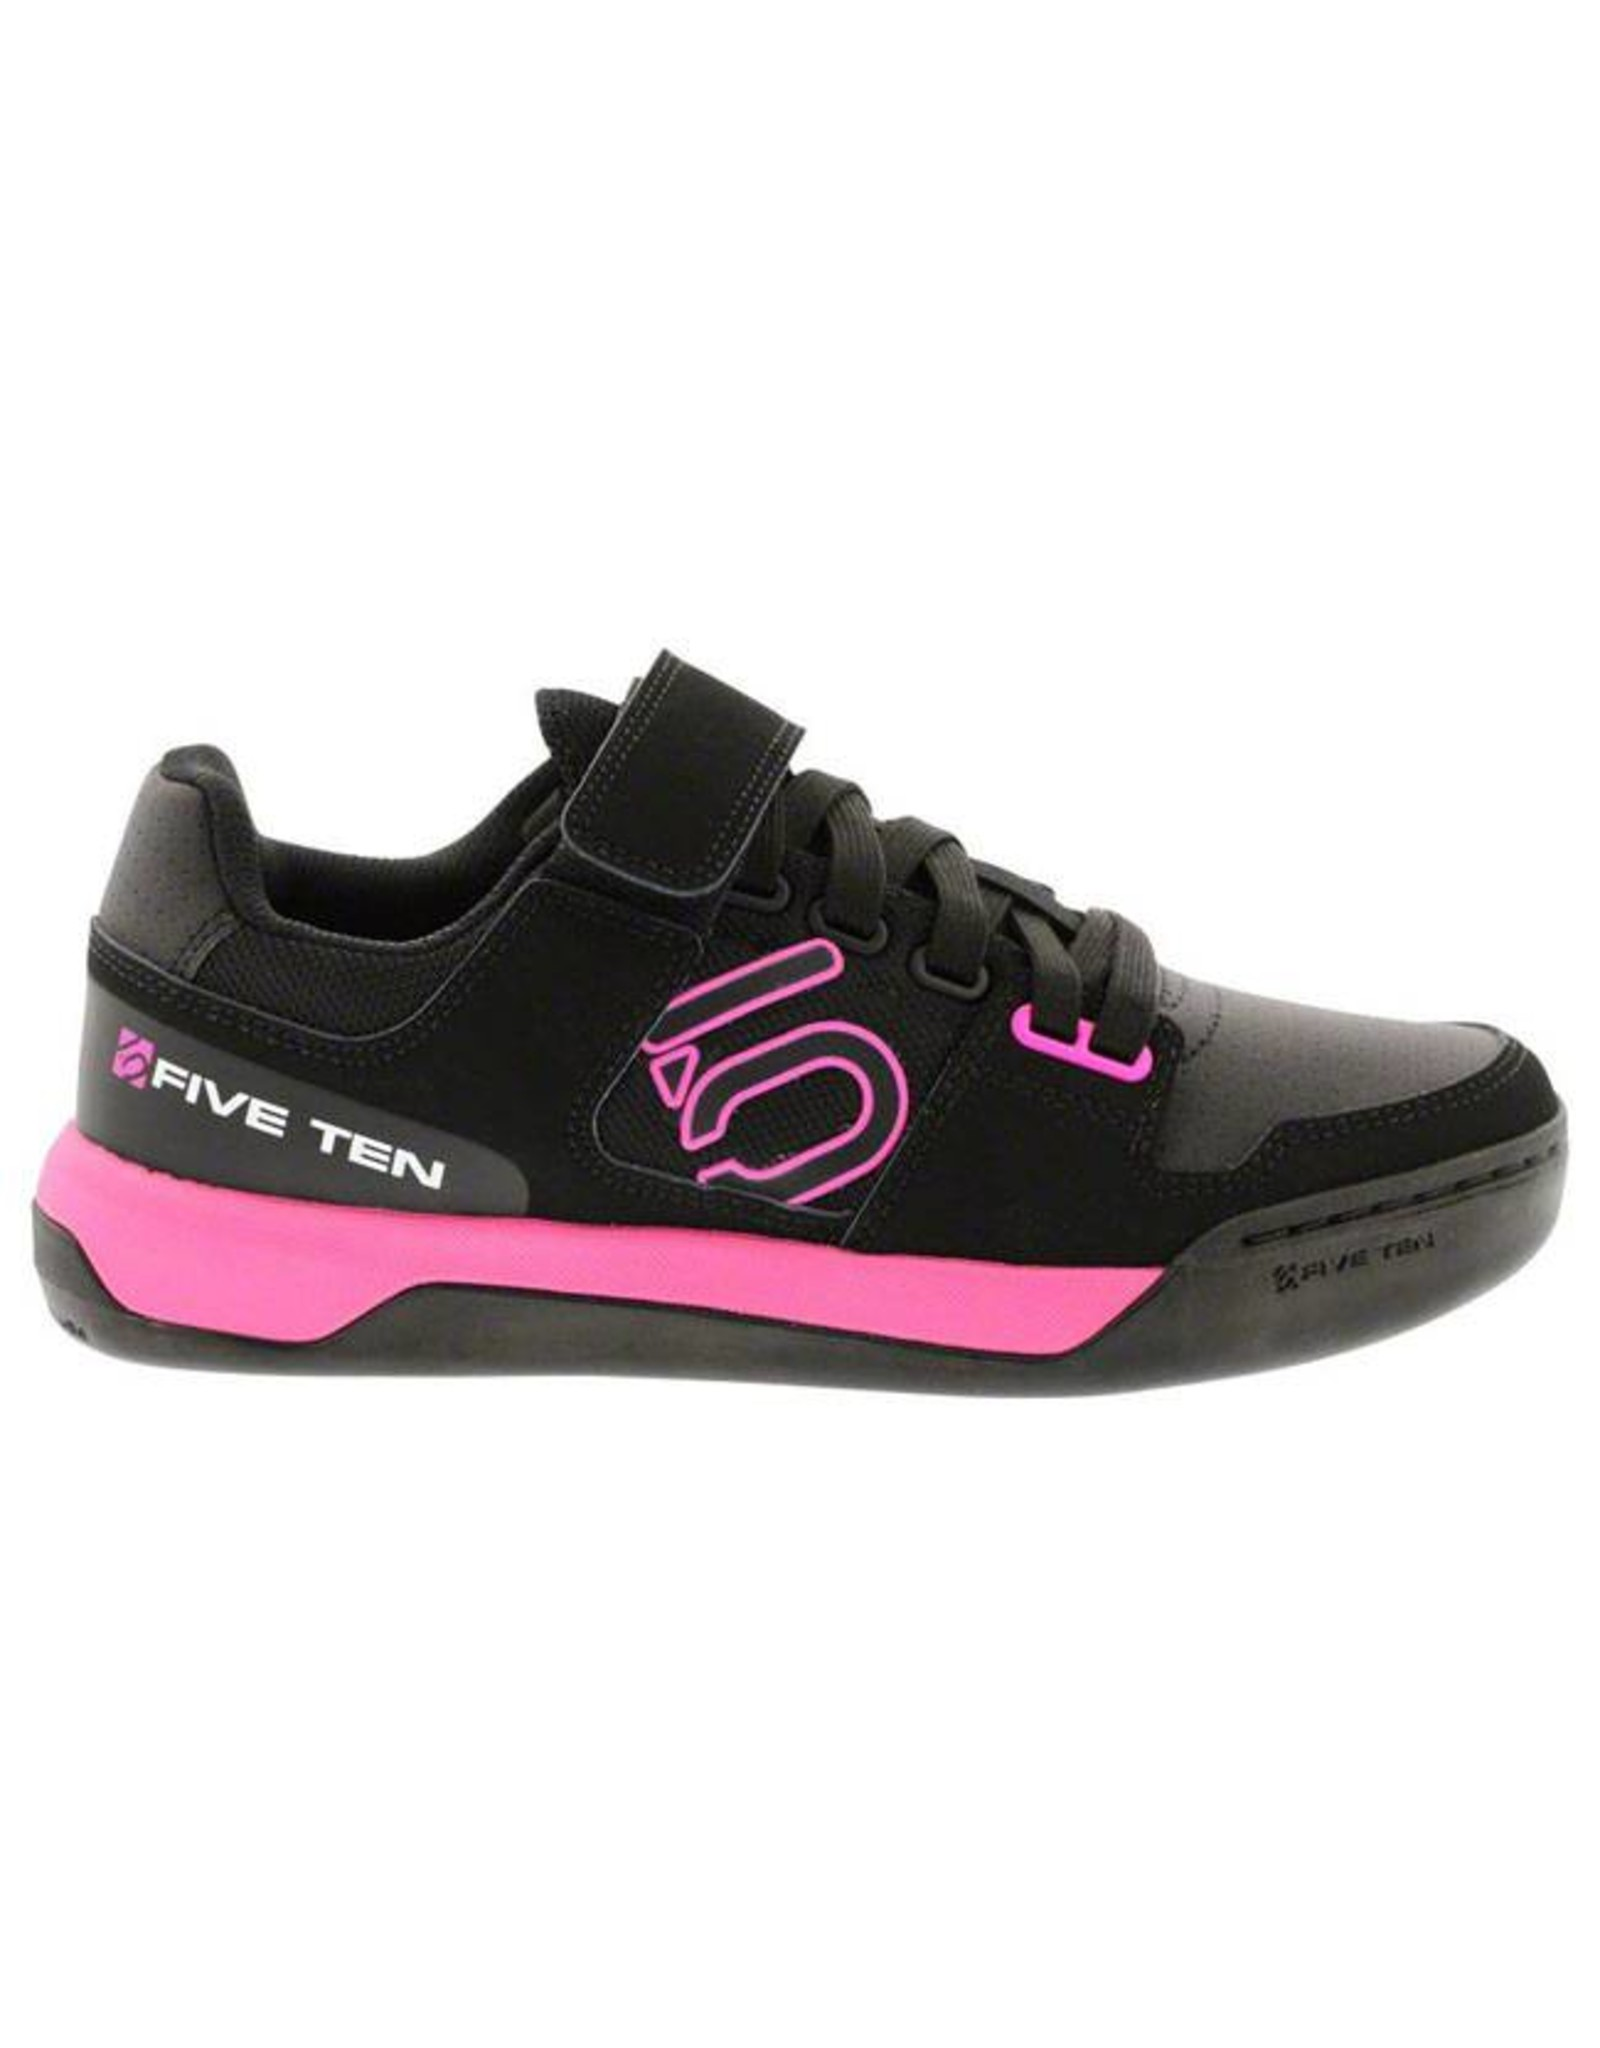 Five Ten Five Ten Hellcat Women's Clipless/Flat Pedal Shoe: Shock Pink 7.5